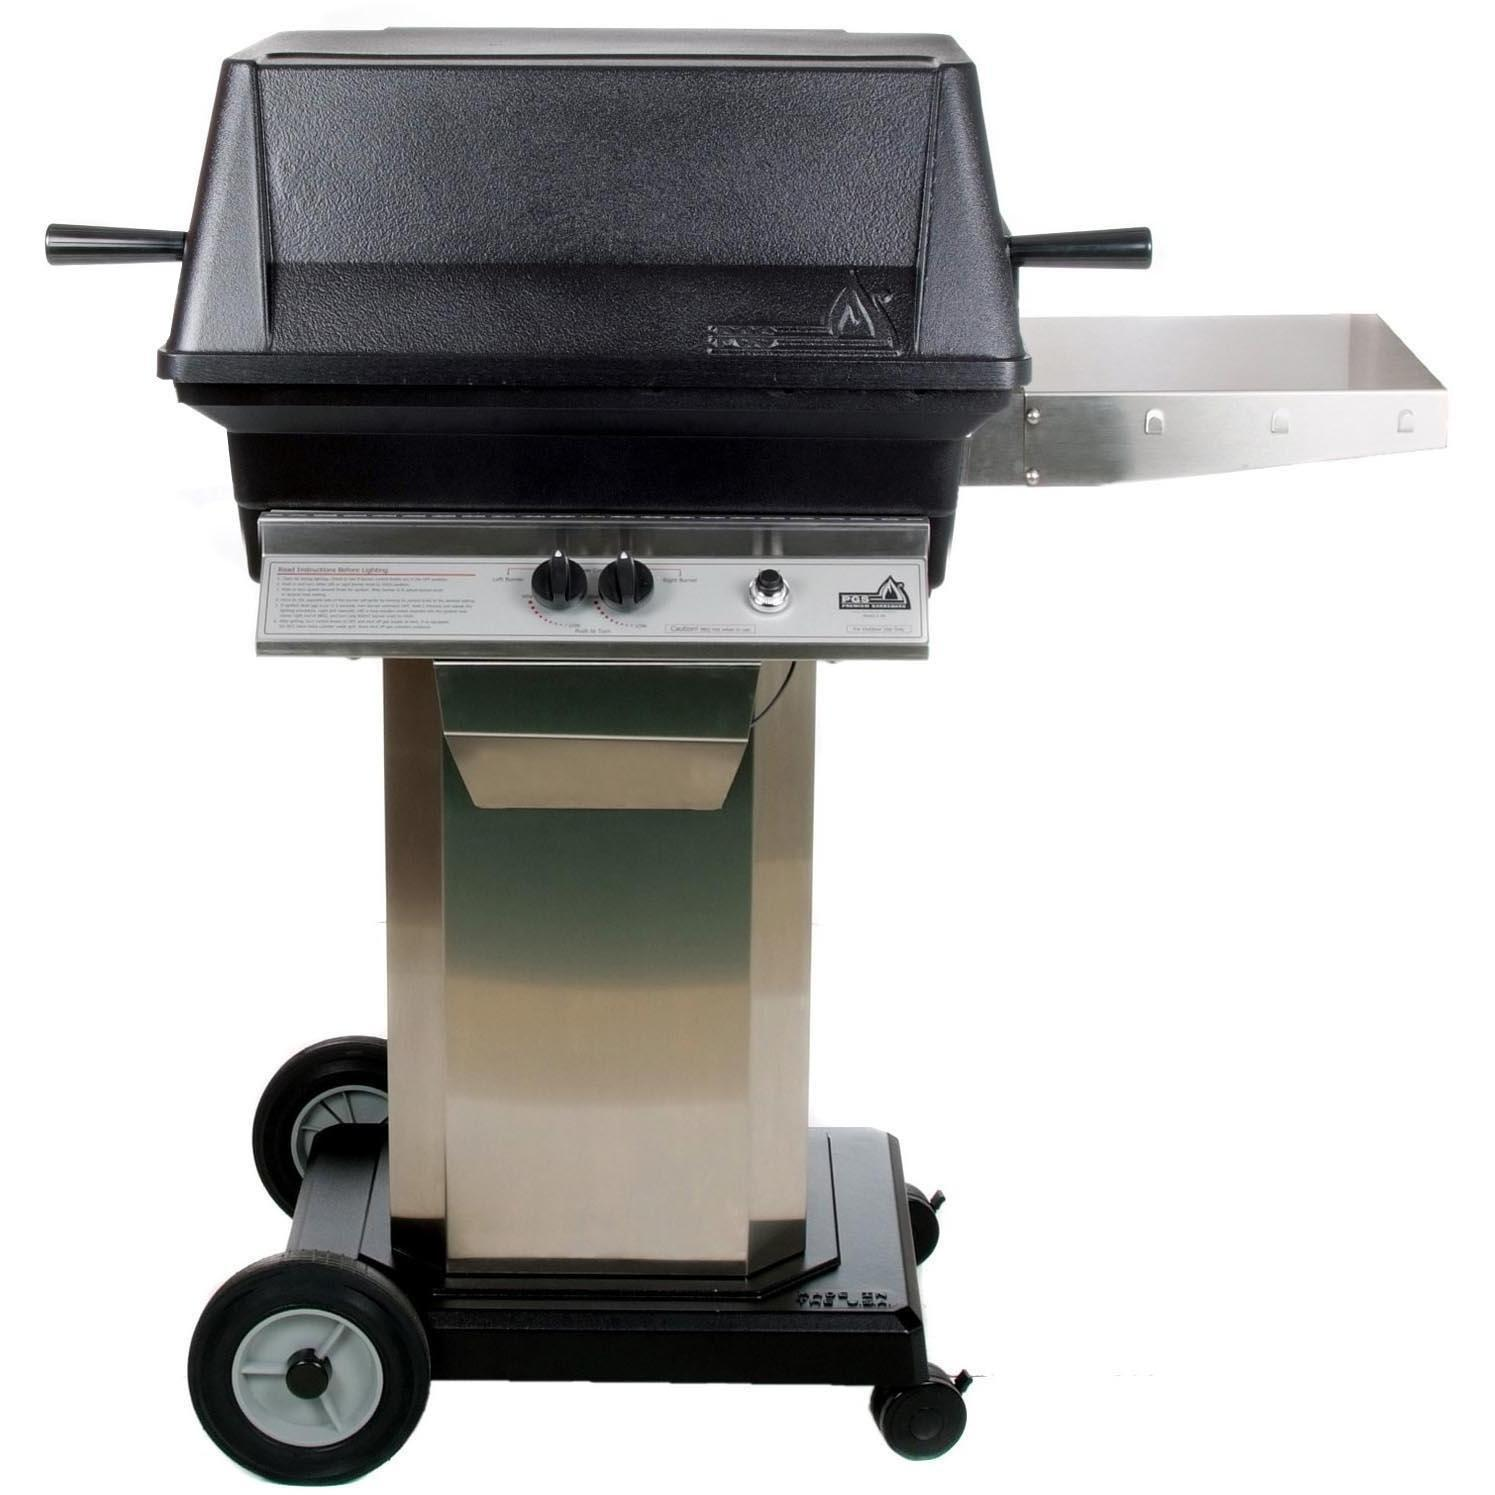 Pgs a cast aluminum propane gas grill on stainless steel